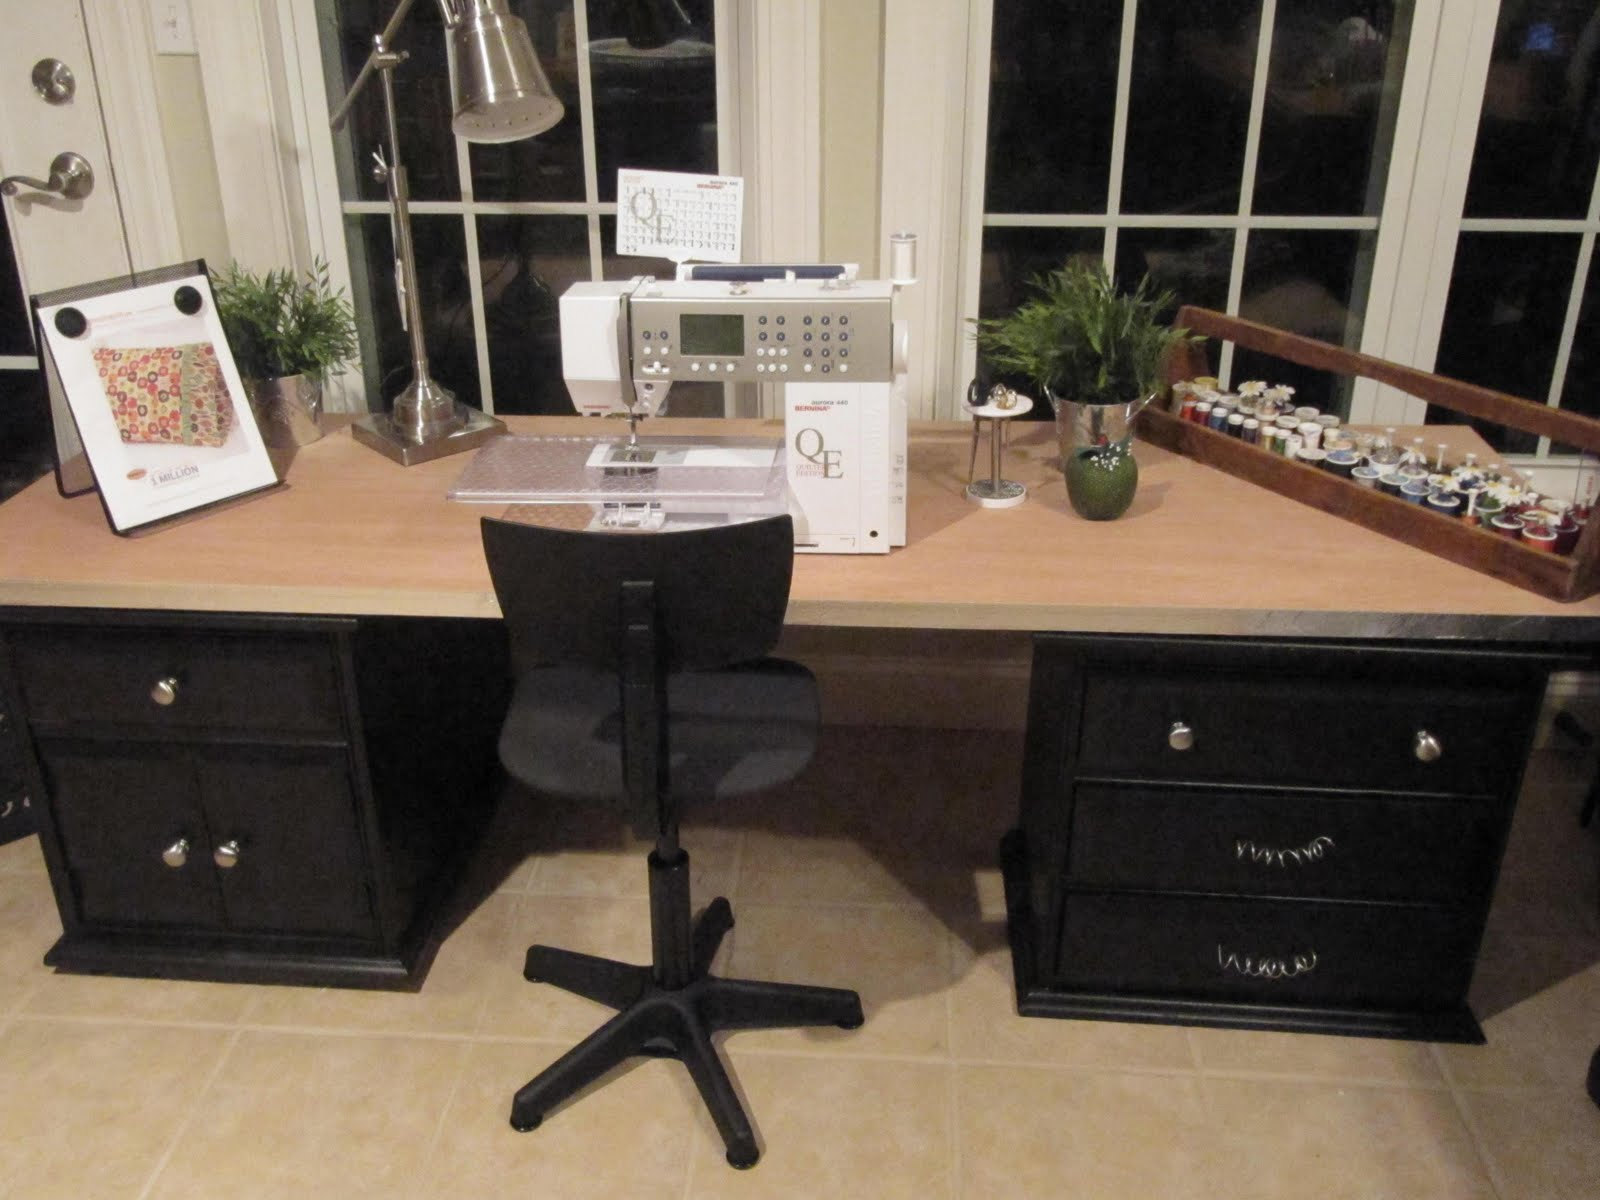 Sew many ways tool time tuesdaynew sewing table for Sewing room furniture